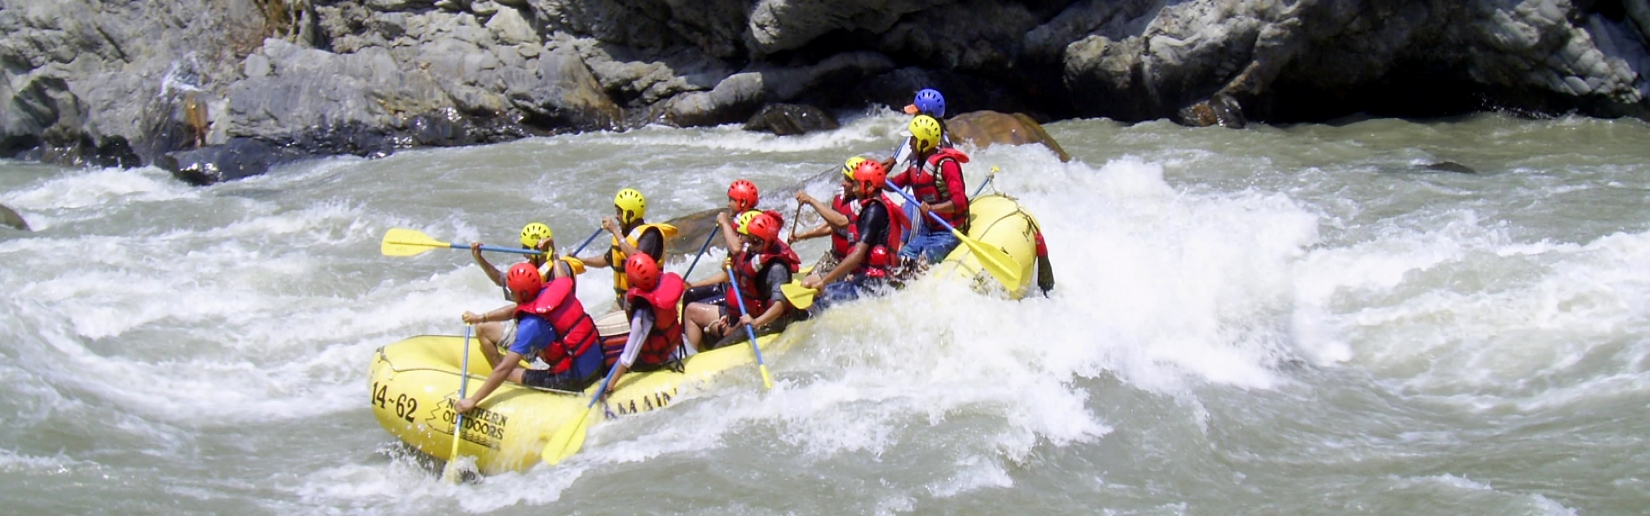 River <span>Rafting</span> in Nepal